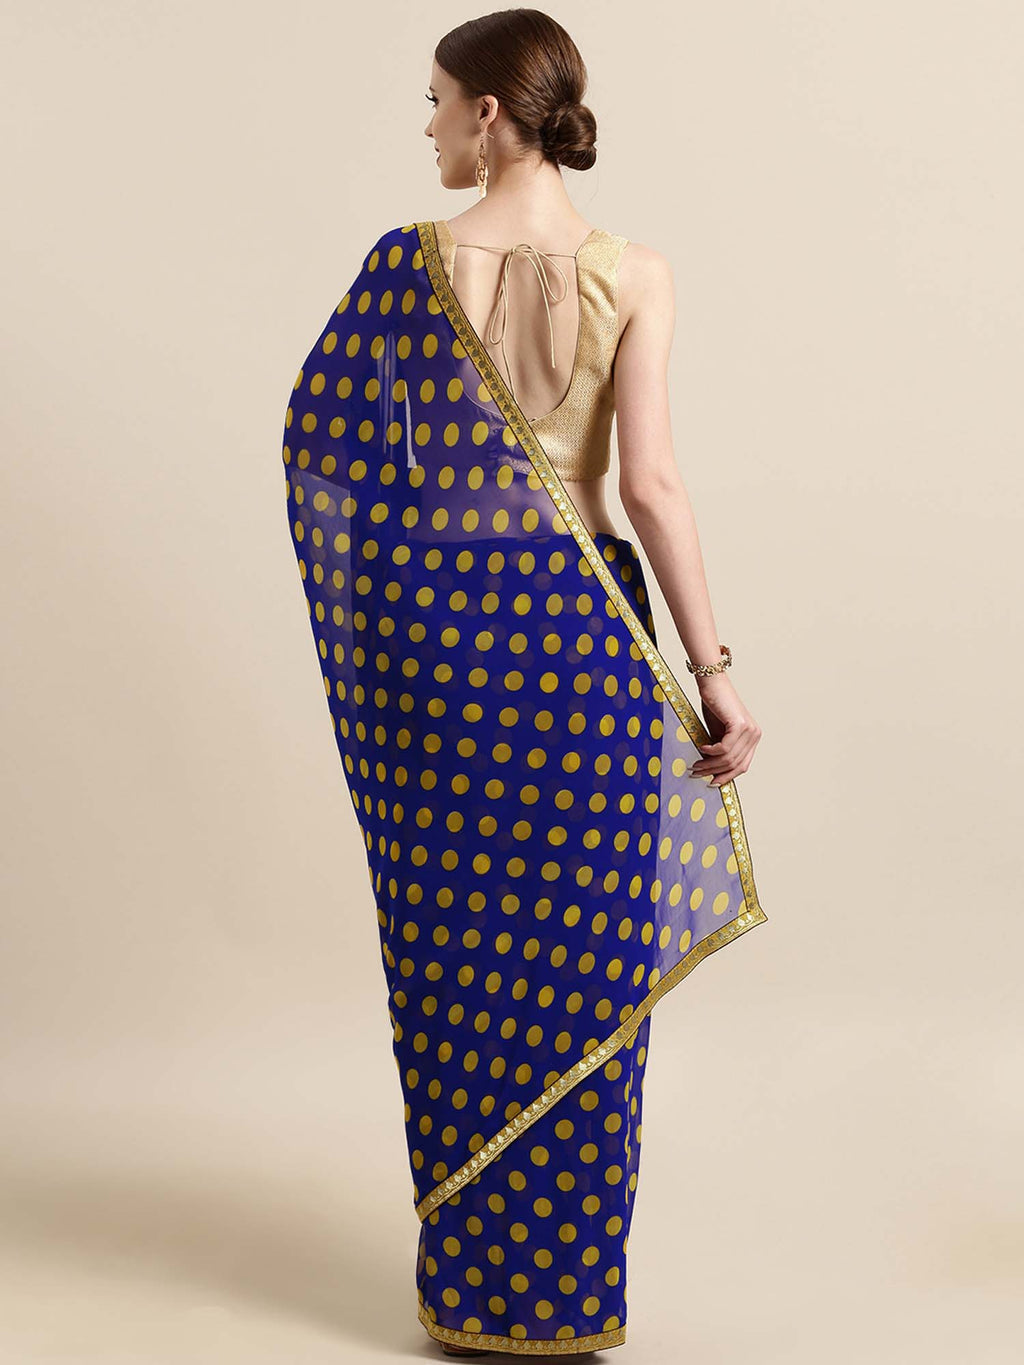 Blue And Yellow Poly Georgette Polka Dots Print With Printed Lace And Solid Dupion Blouse - Riviera Closet